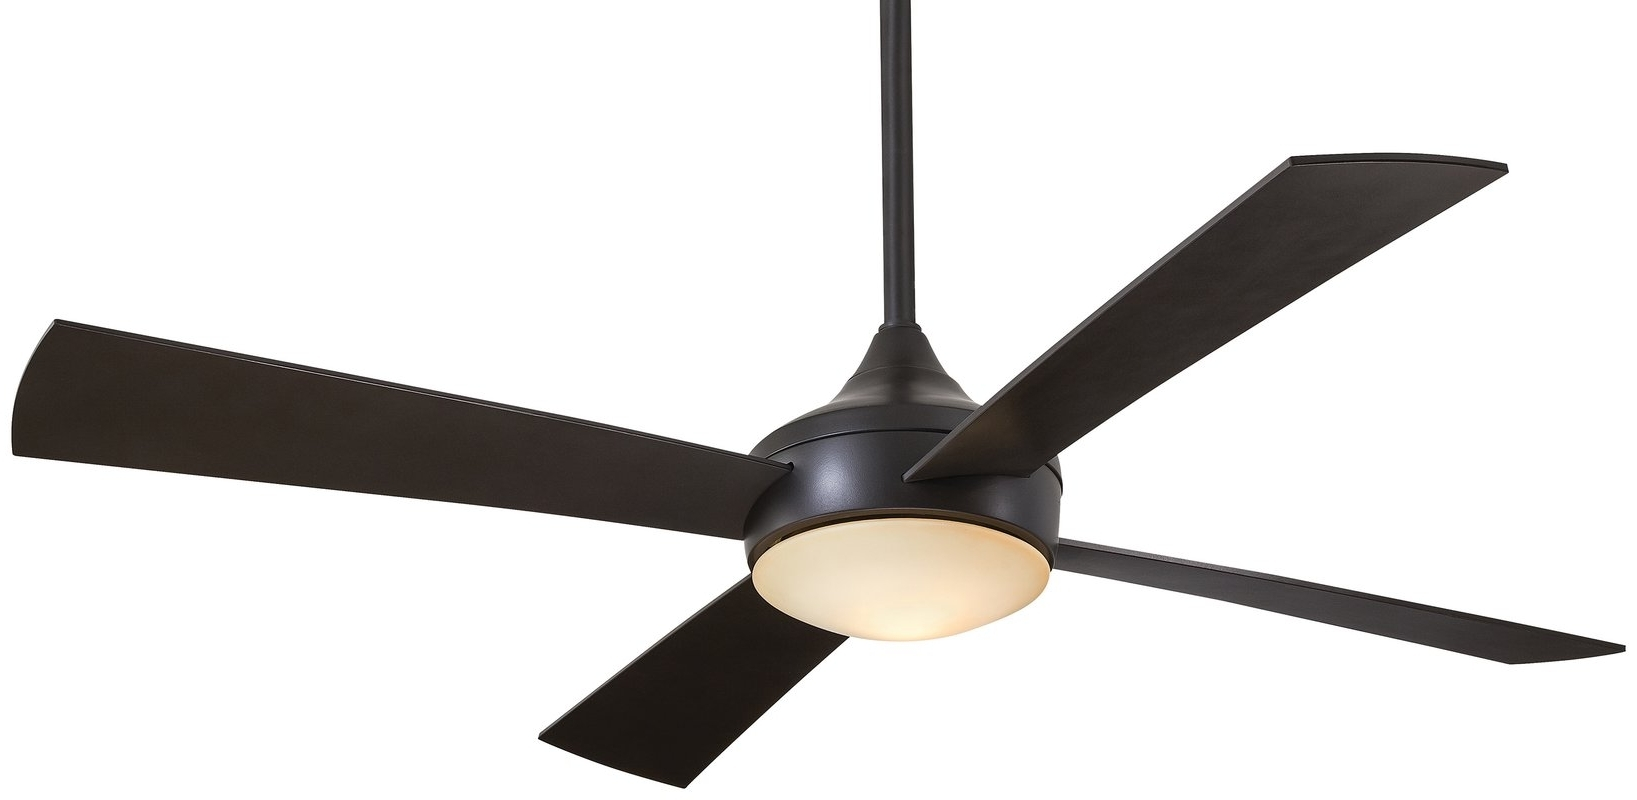 Wayfair Inside Oversized Outdoor Ceiling Fans (View 14 of 20)